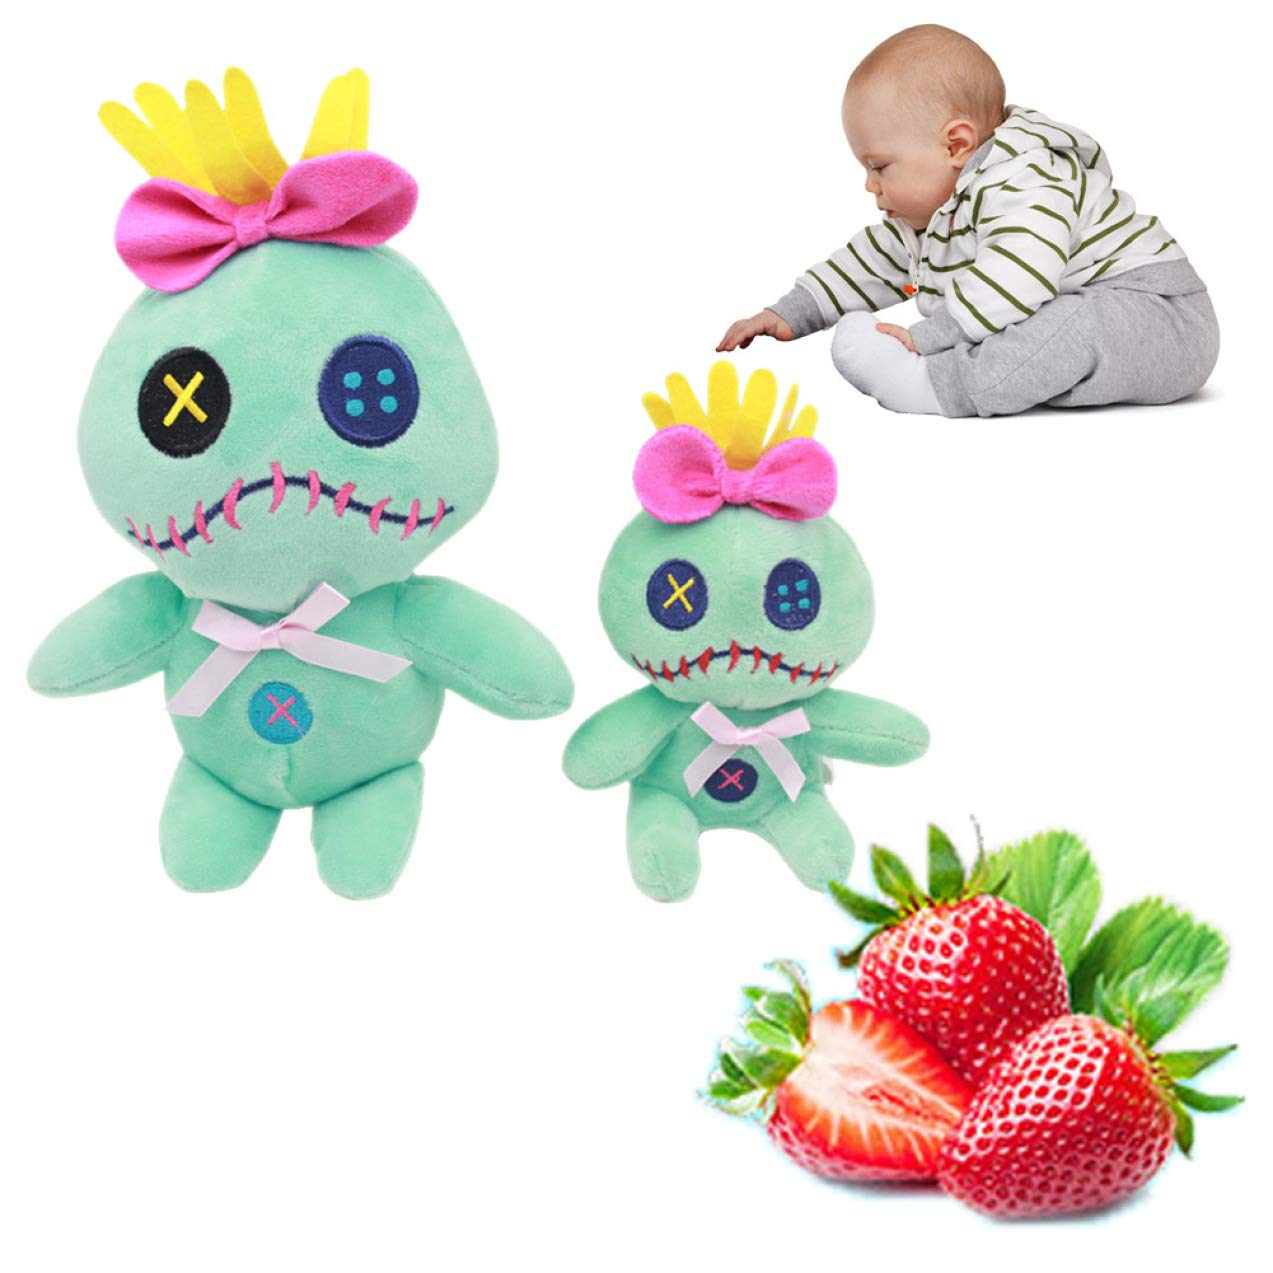 HOXUAN Homely Kawaii Lilo y Stitch Scrump Peluche Juguetes ...